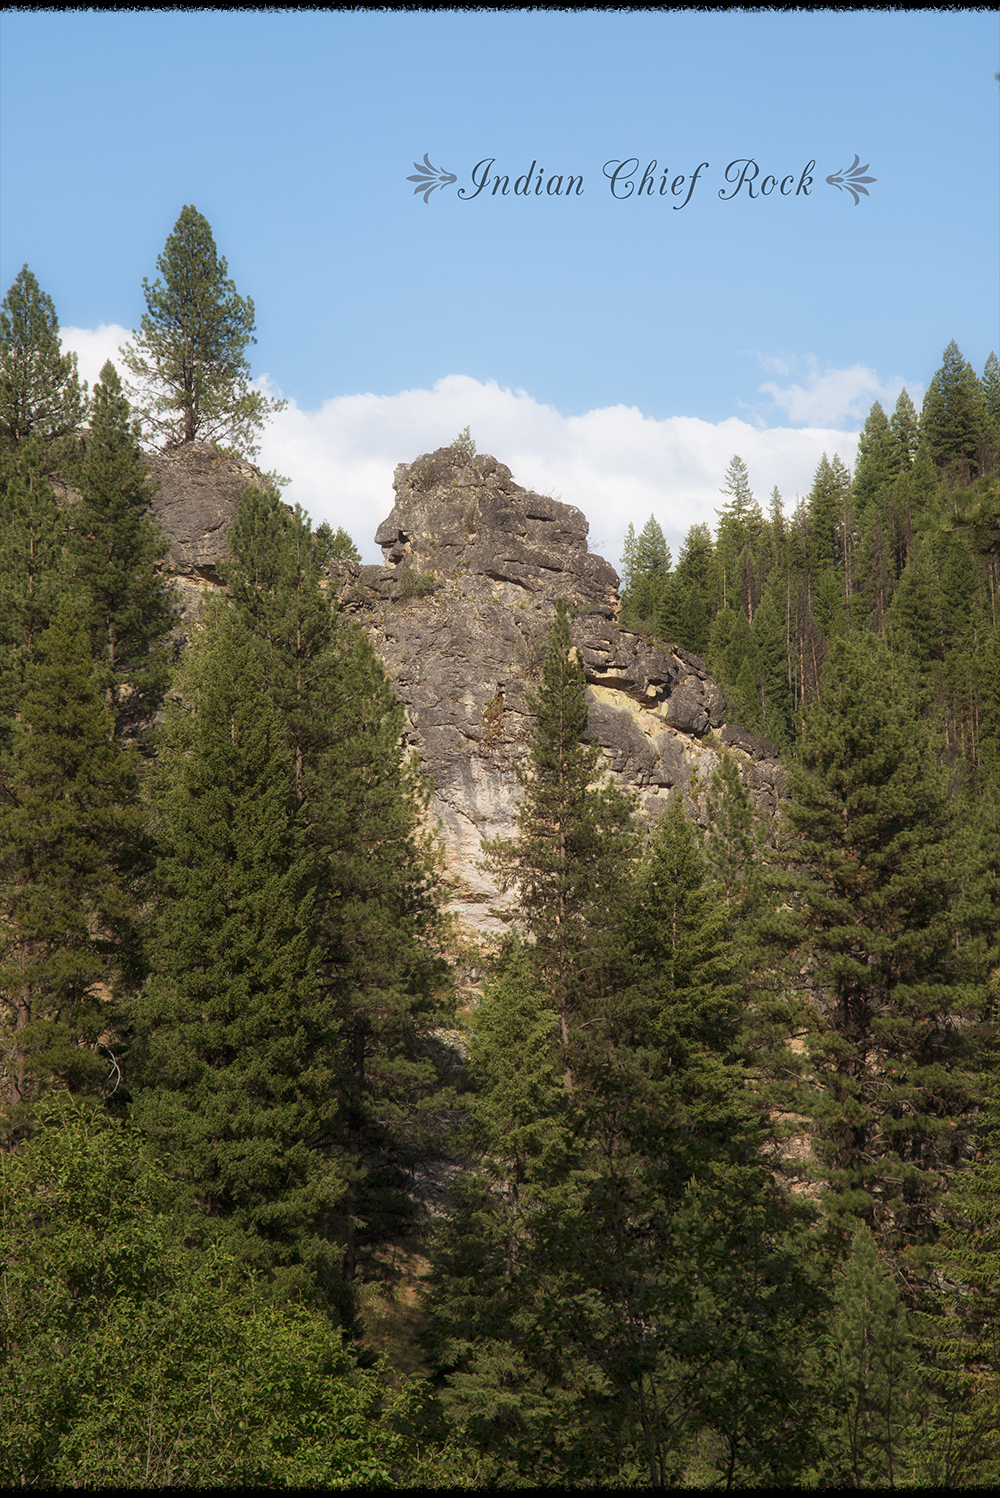 Indian Chief Rock in the Magruder Corridor Bitterroot Mountain Forest in Idaho